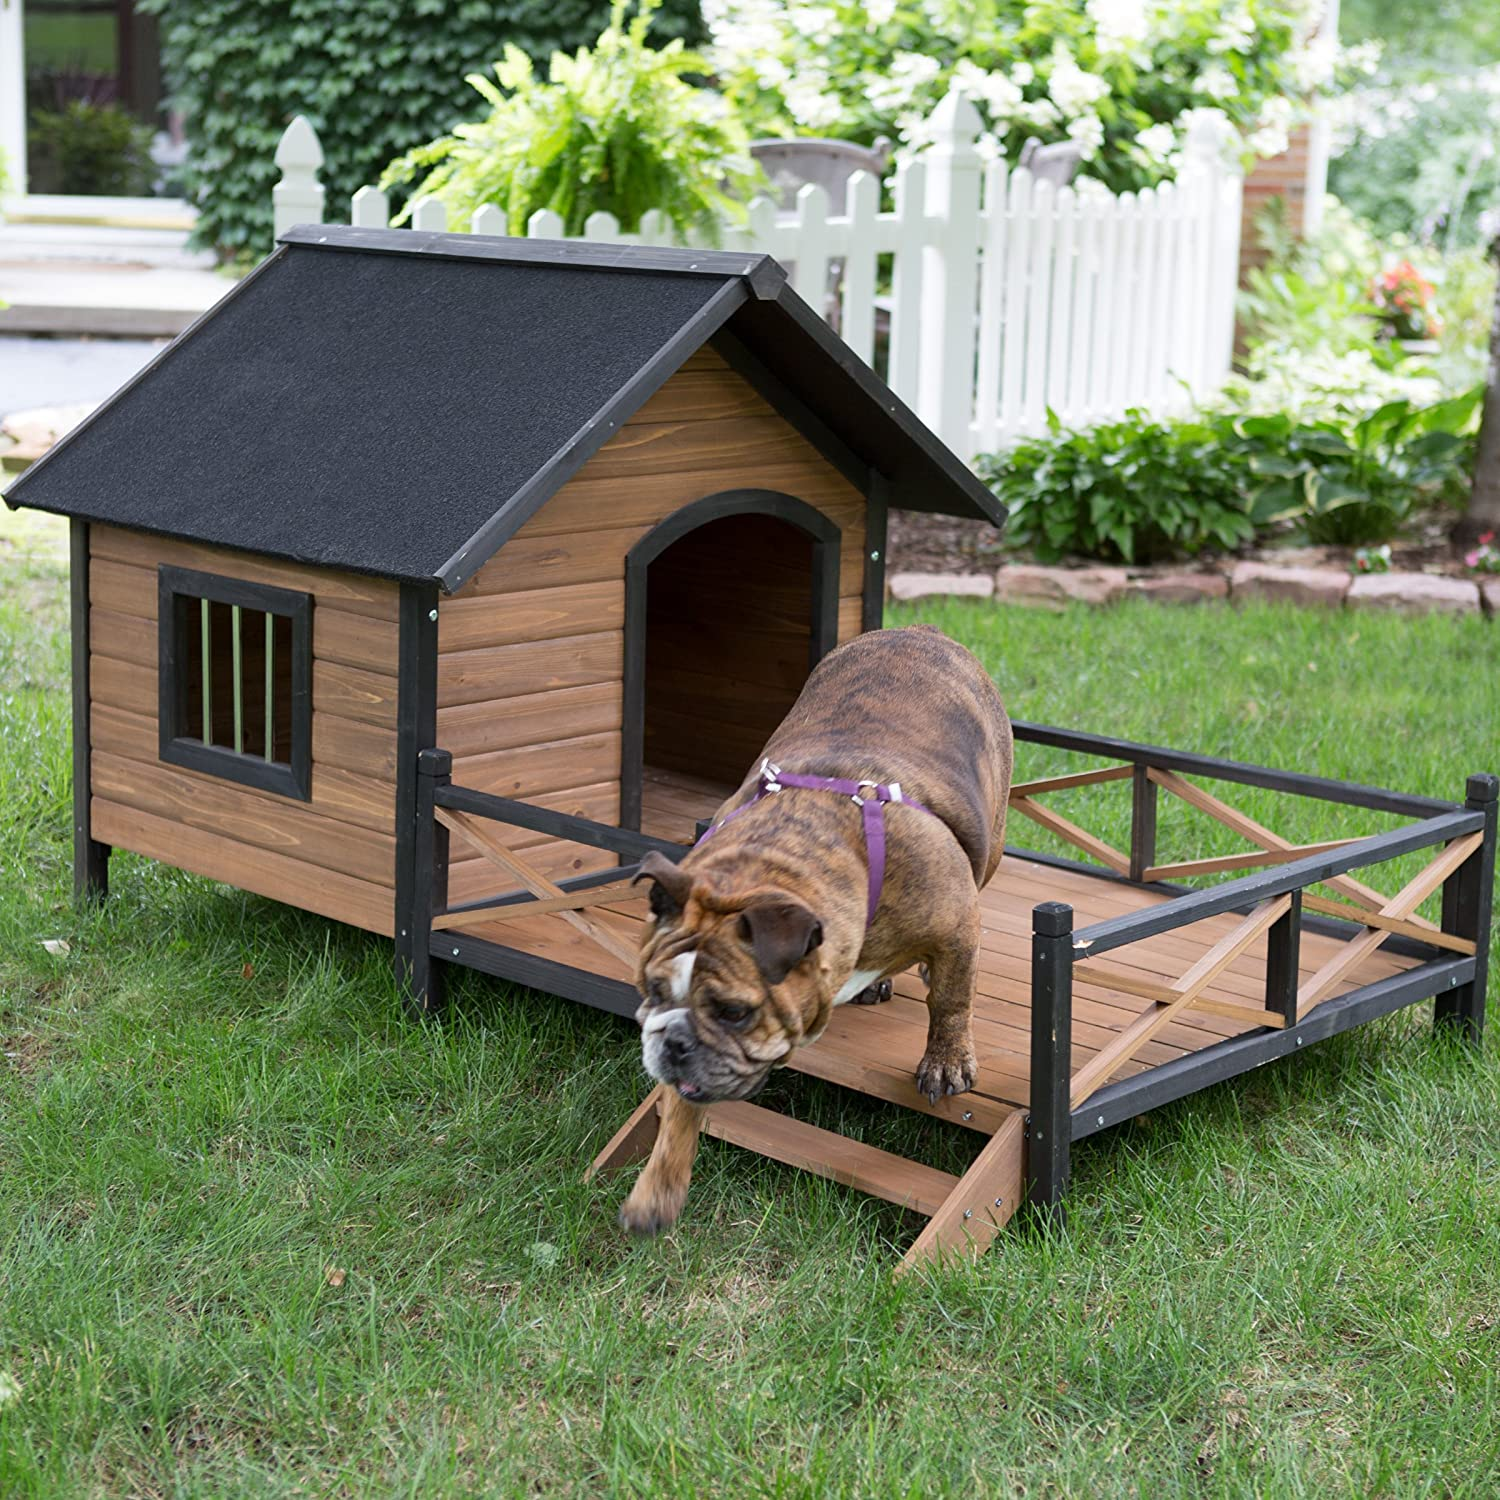 amazon com large dog house lodge with porch deck kennels crates solid fir wood ious deck for sunny nap insulated keep rain out outdoor 67w x 31d x 38h